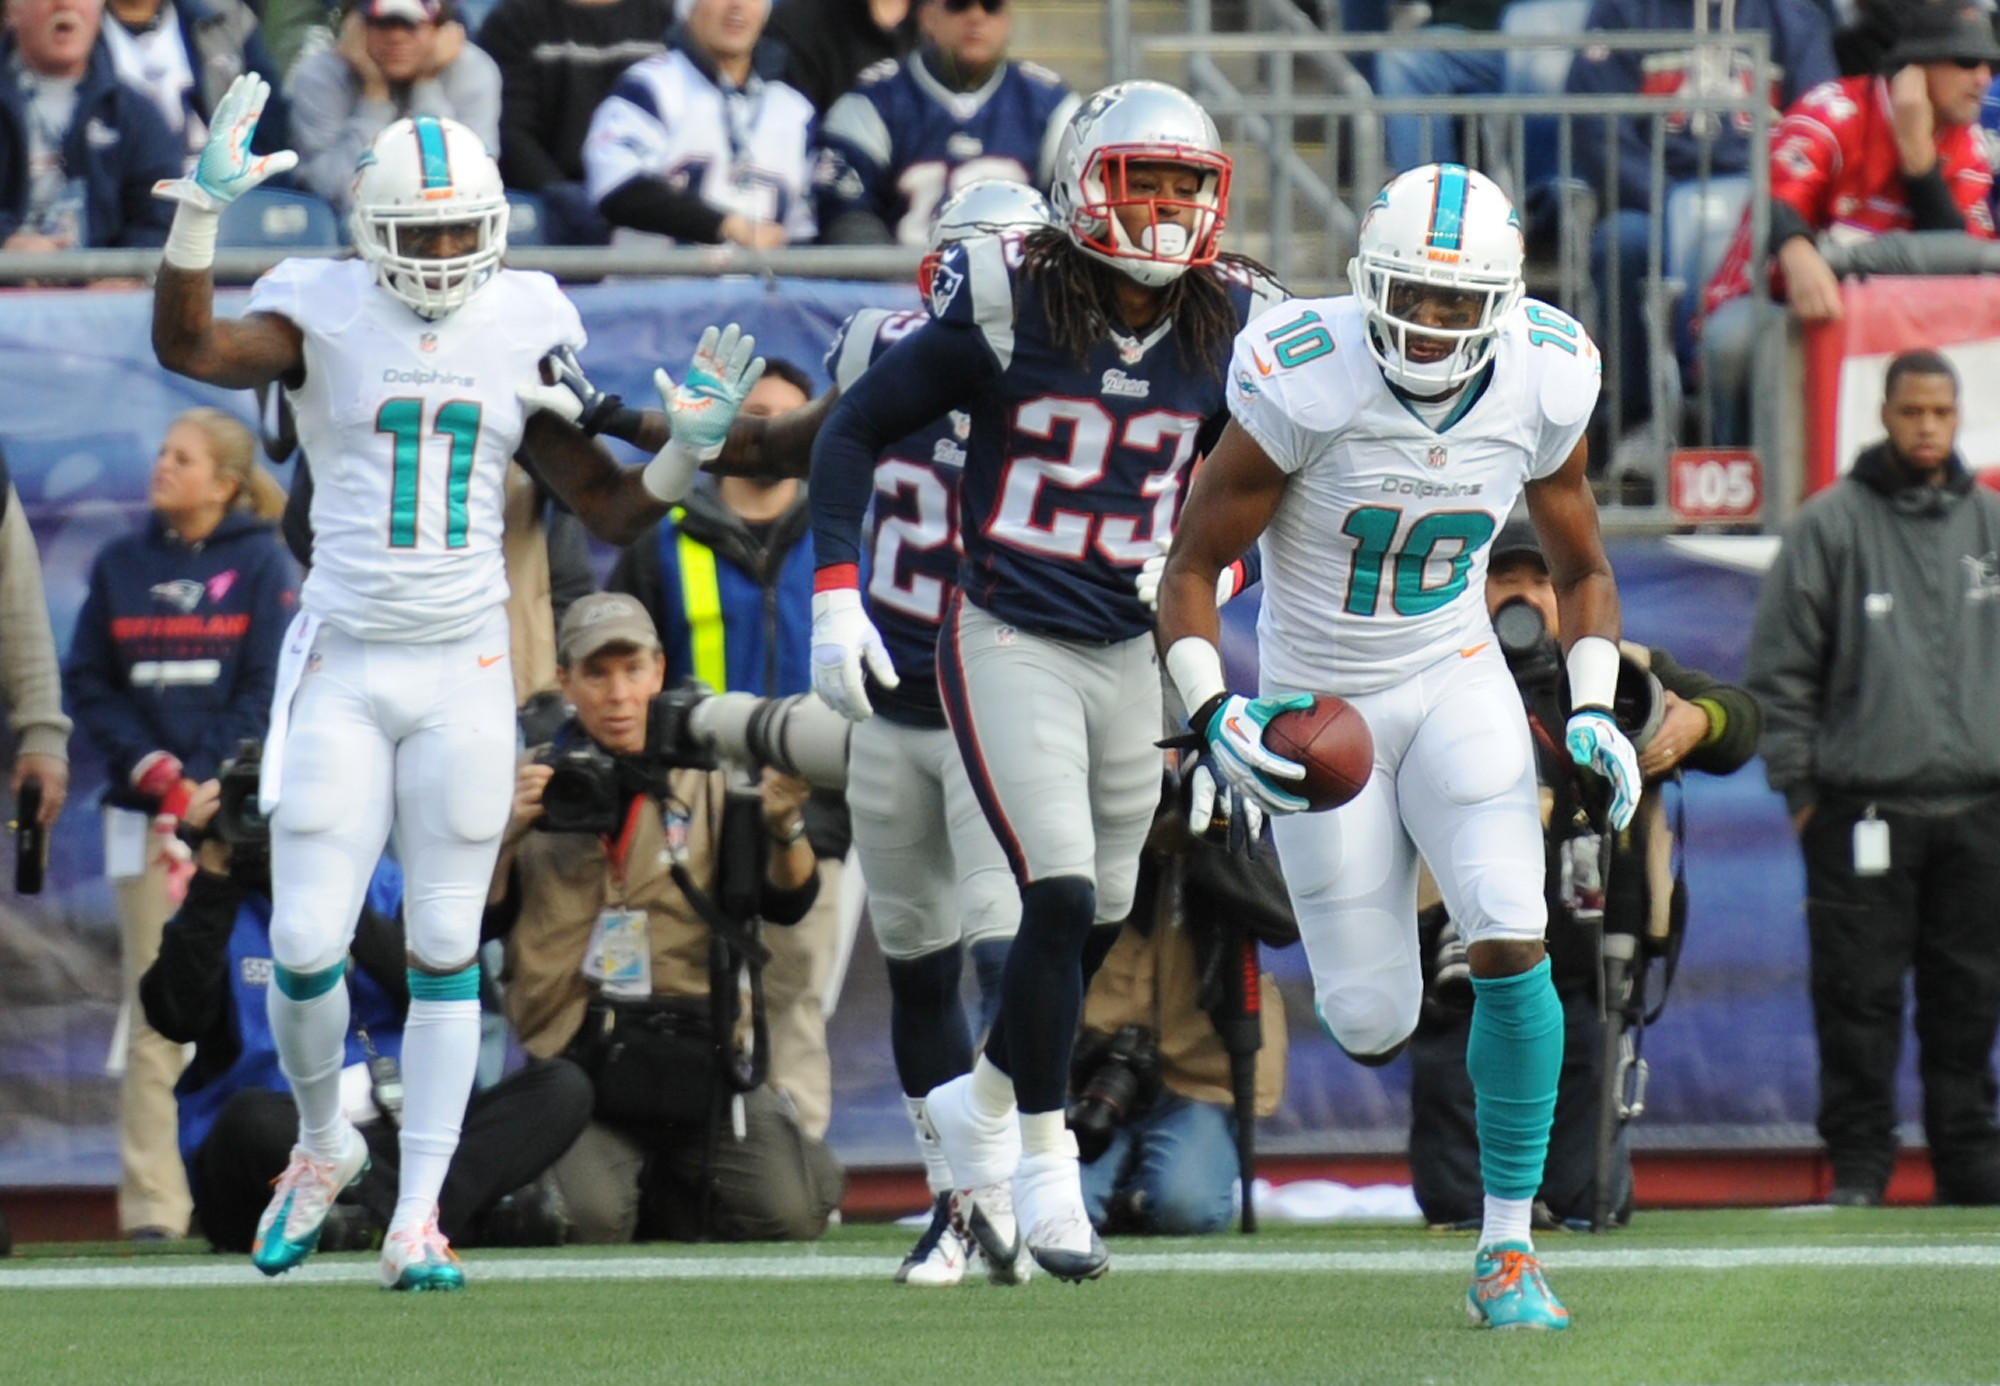 Brandon Gibson scores a touchdown in the first quarter against the Patriots.